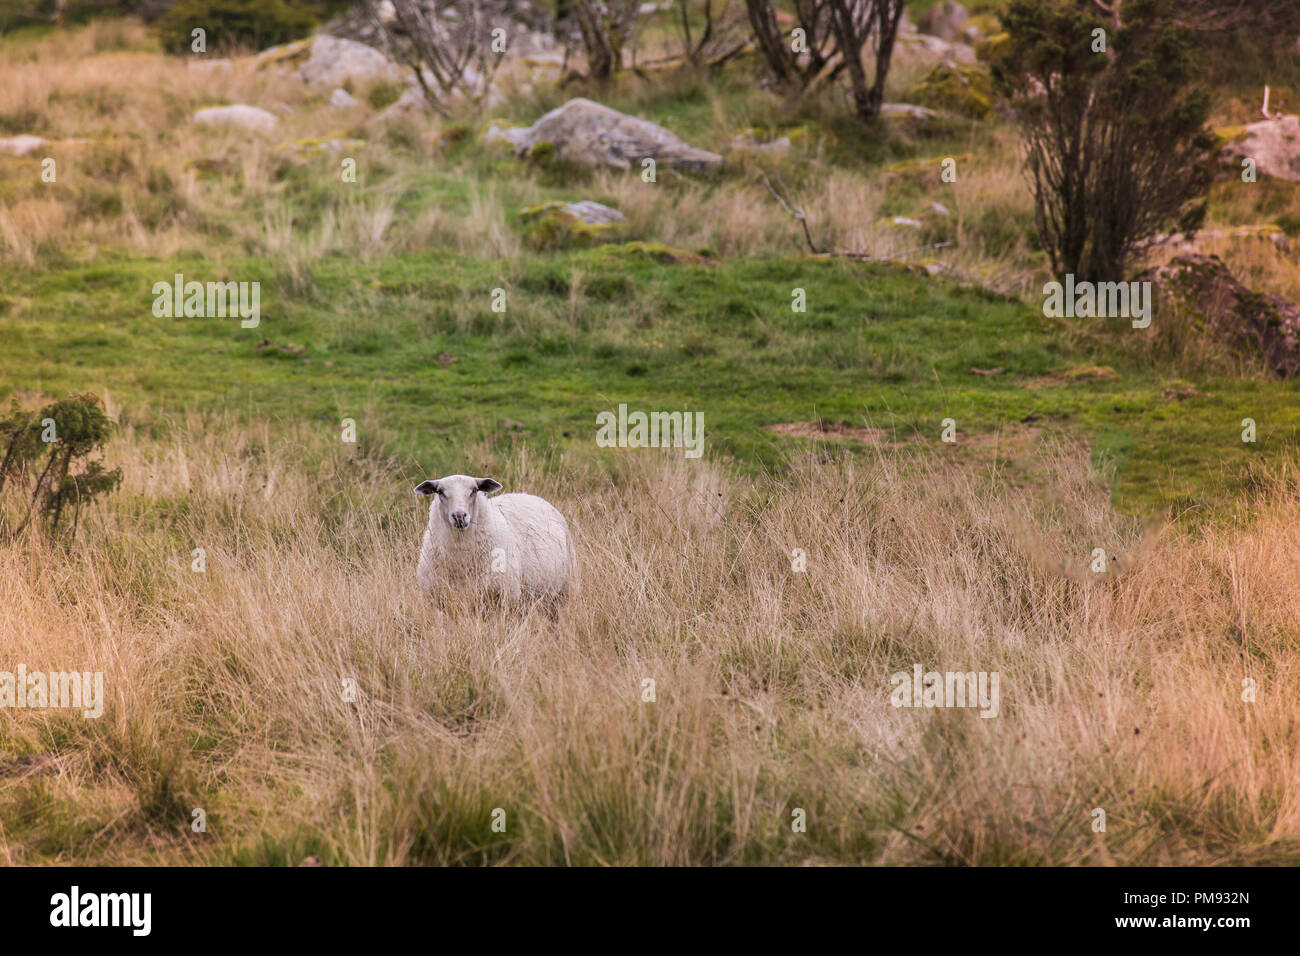 Lone sheep staring across the field in the meadow Stock Photo